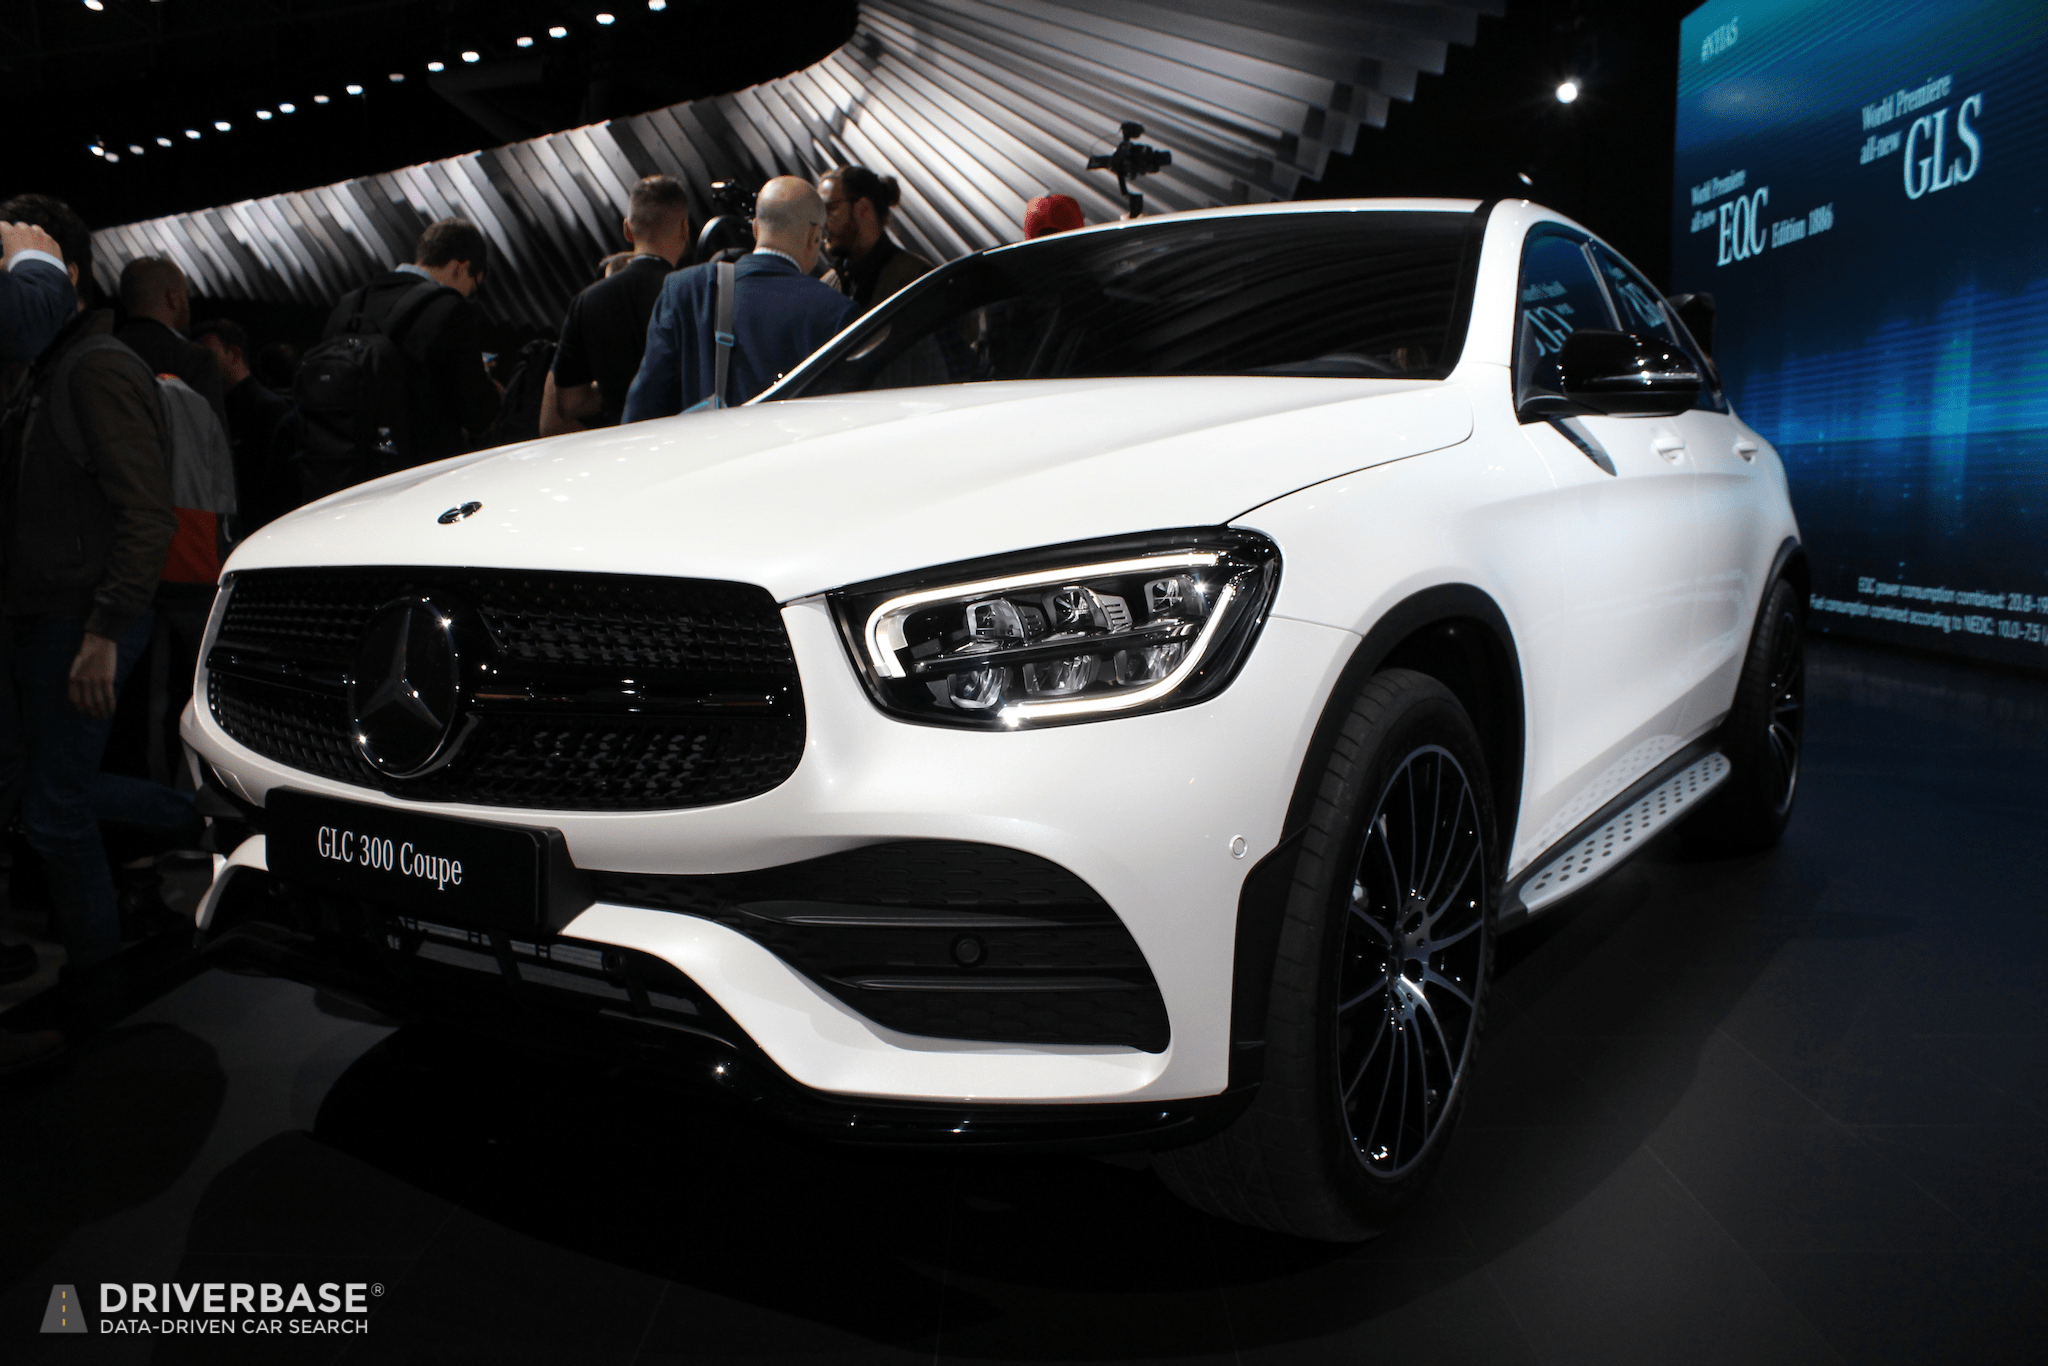 2020 Mercedes Benz Glc 300 Coupe At The 2019 New York Auto Show Driverbase